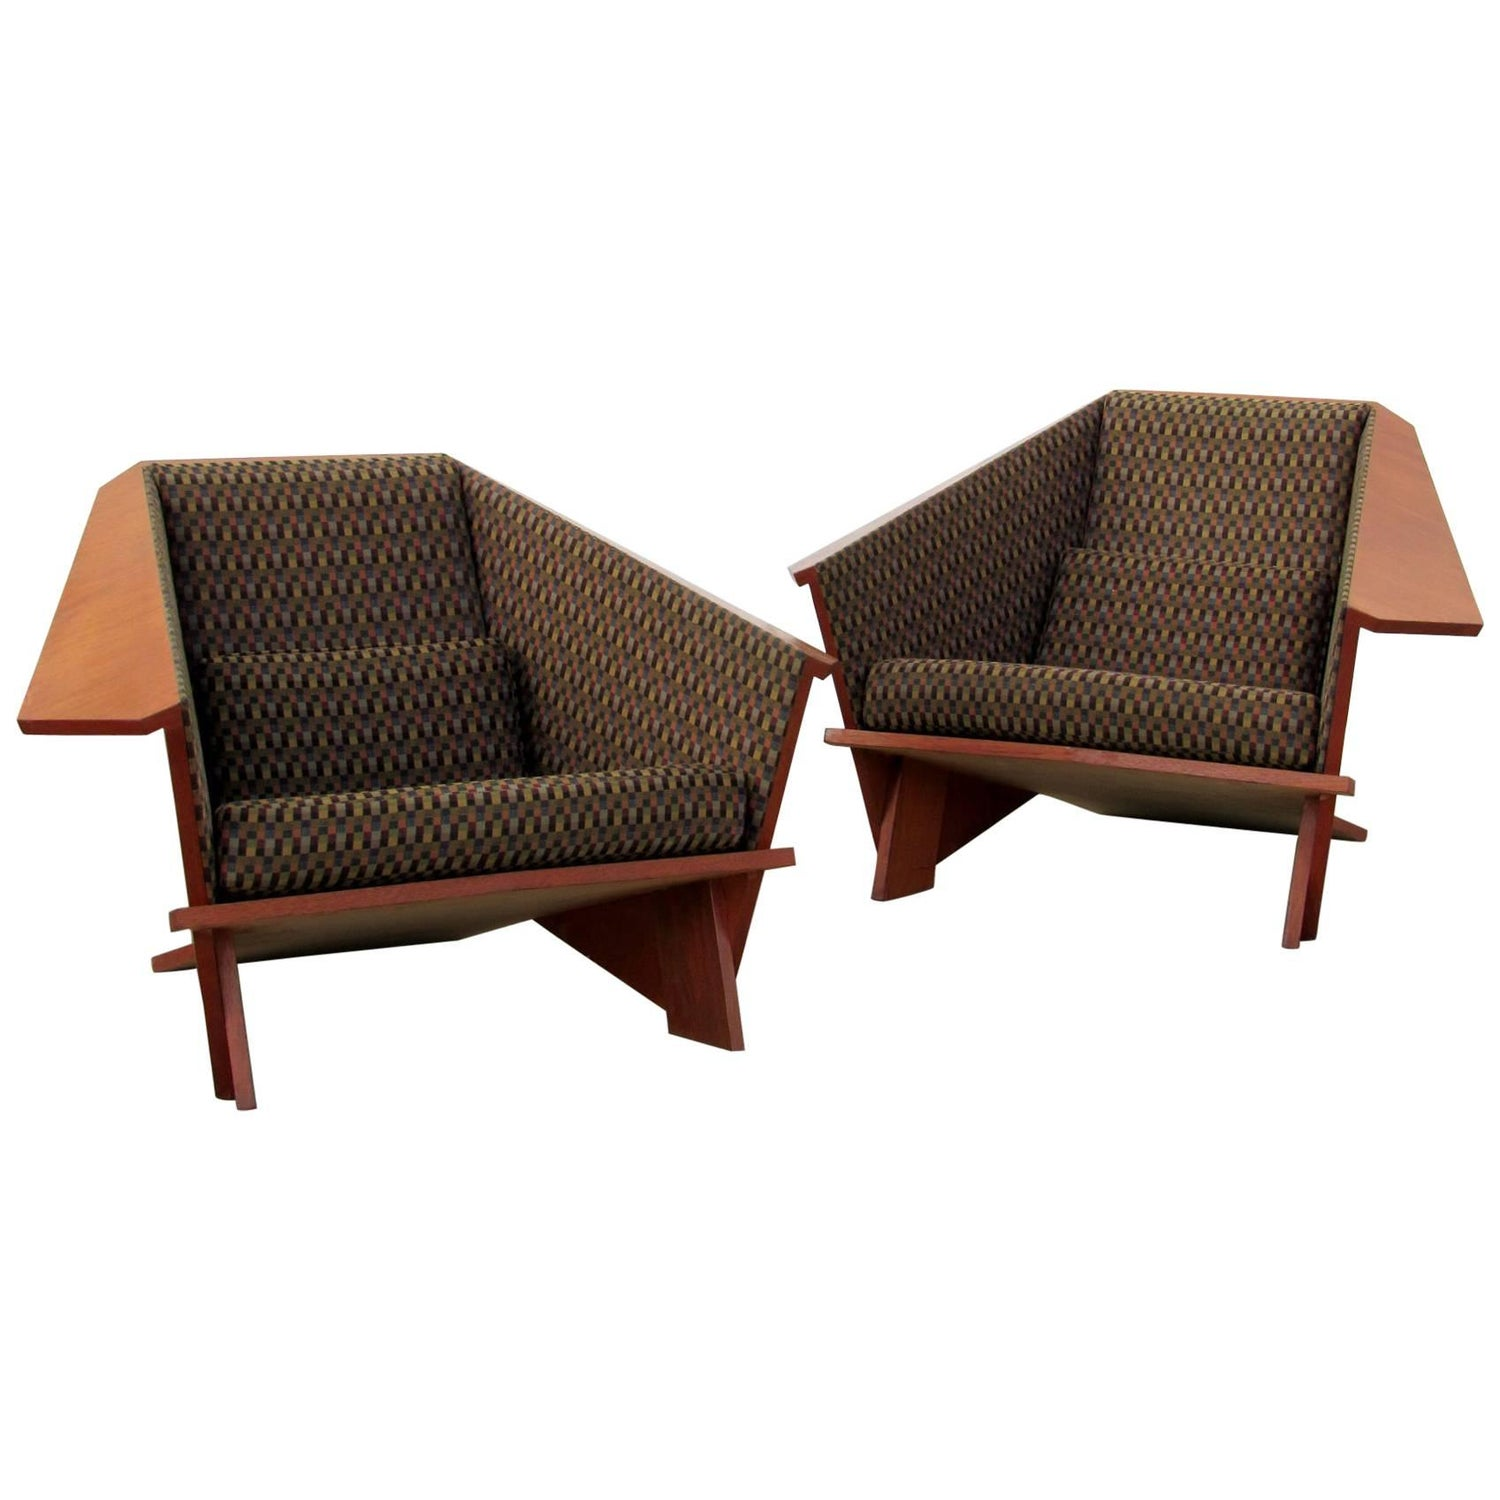 Frank Lloyd Wright Furniture Tables Chairs Sofas & More 65